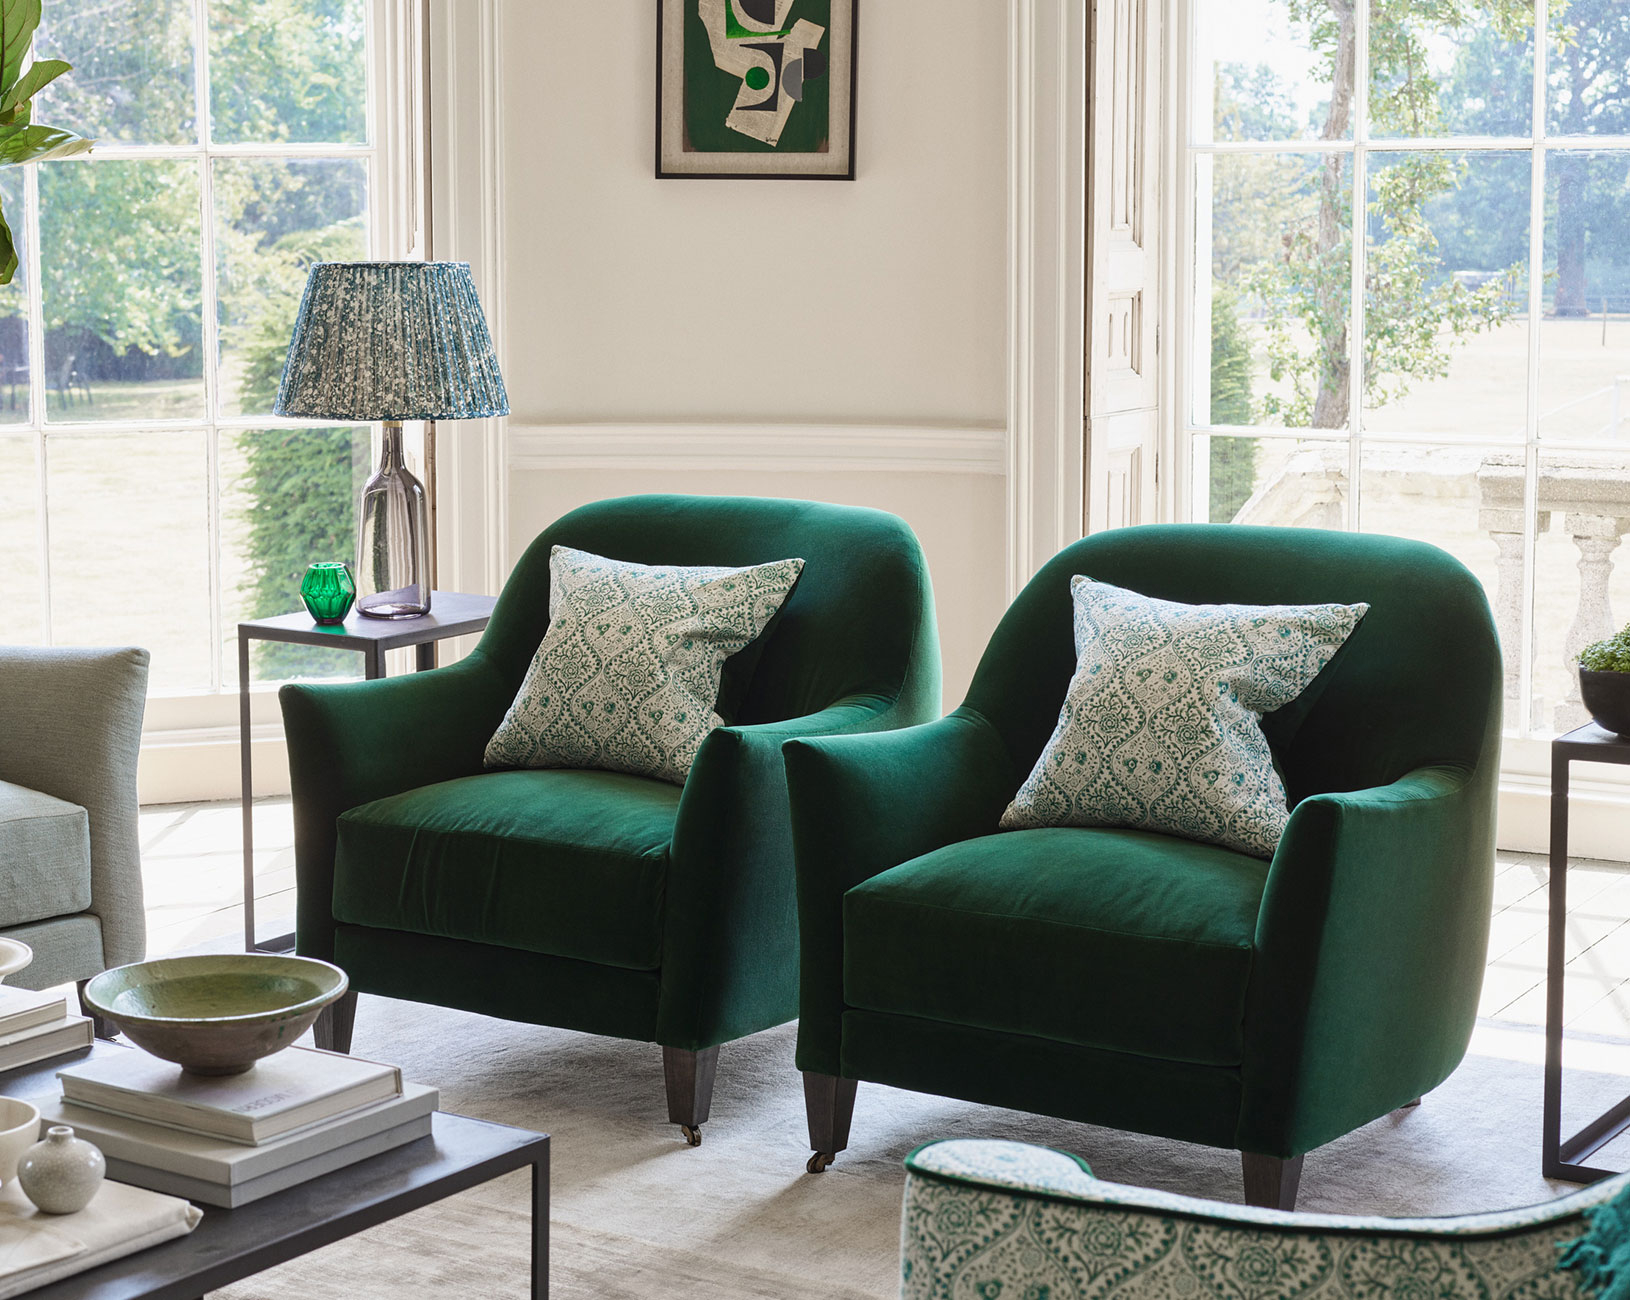 bloomsbury chairs